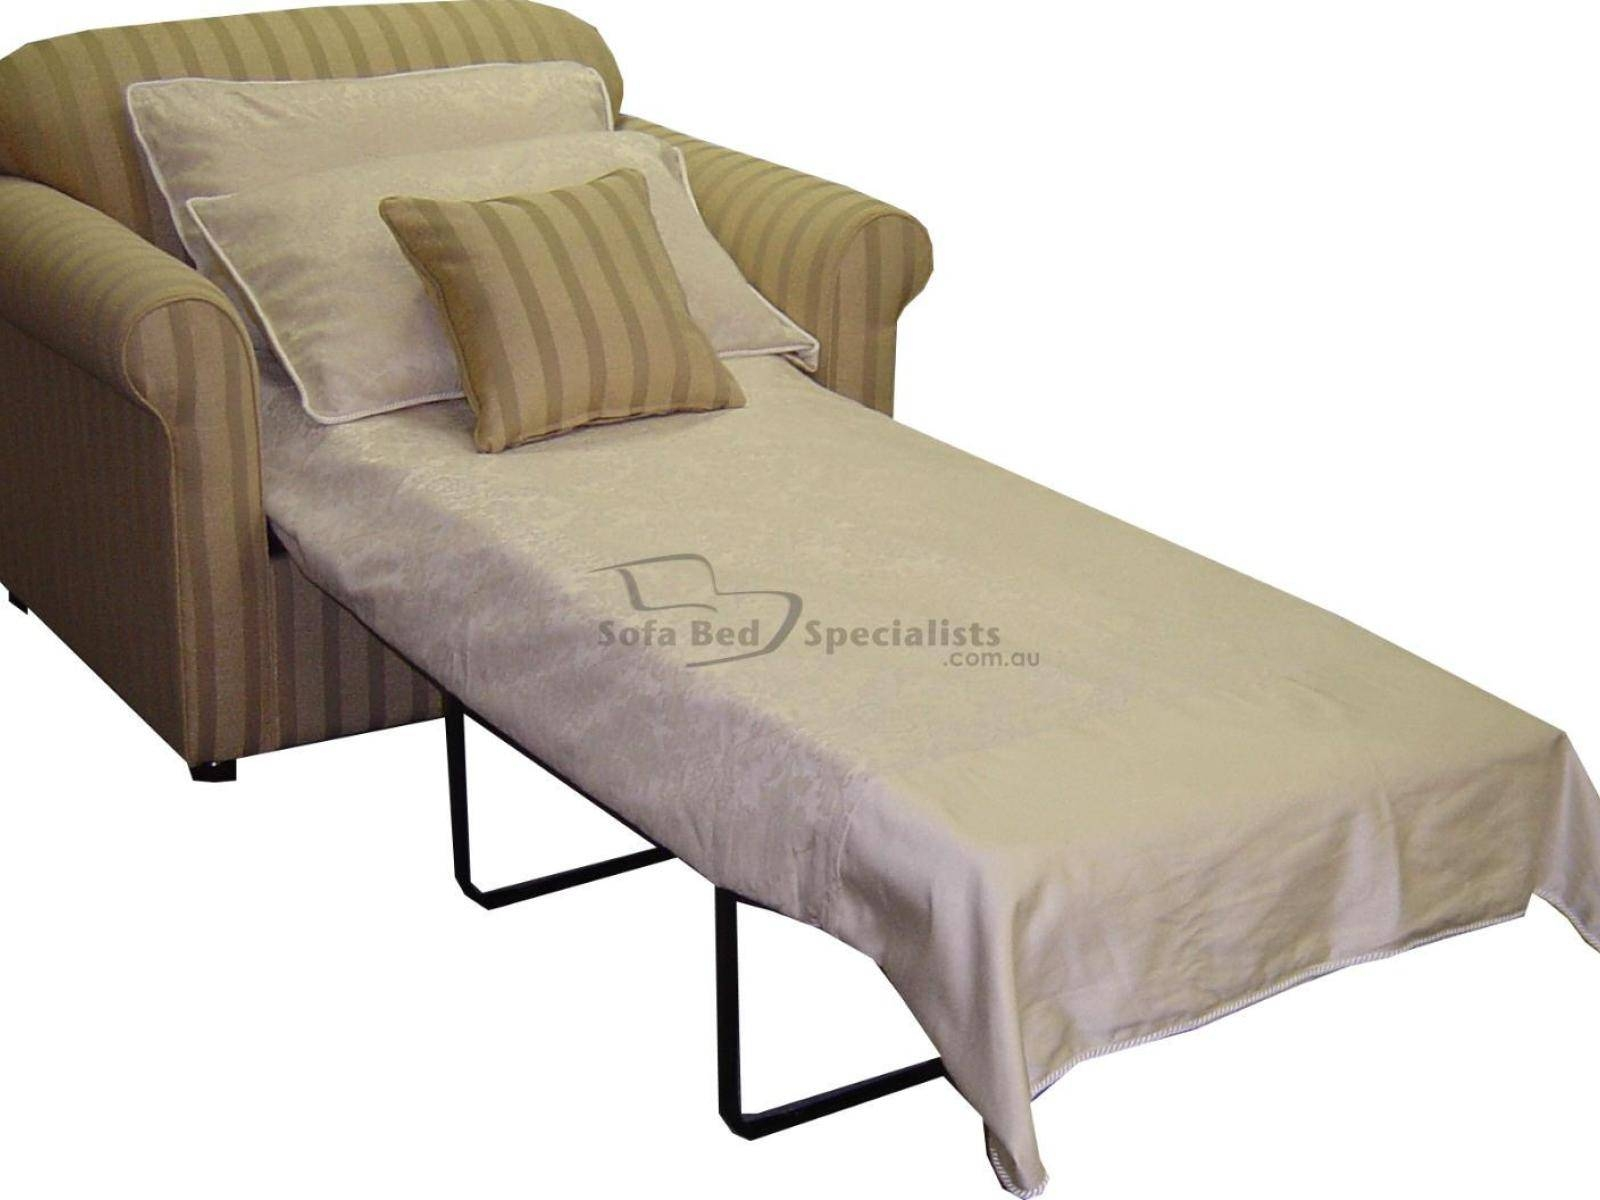 ▻ Sofa : 31 Folding A Futon Bed 2 Foam Sleeper Sofa Bed Mattress With Cheap Single Sofa Bed Chairs (View 27 of 30)